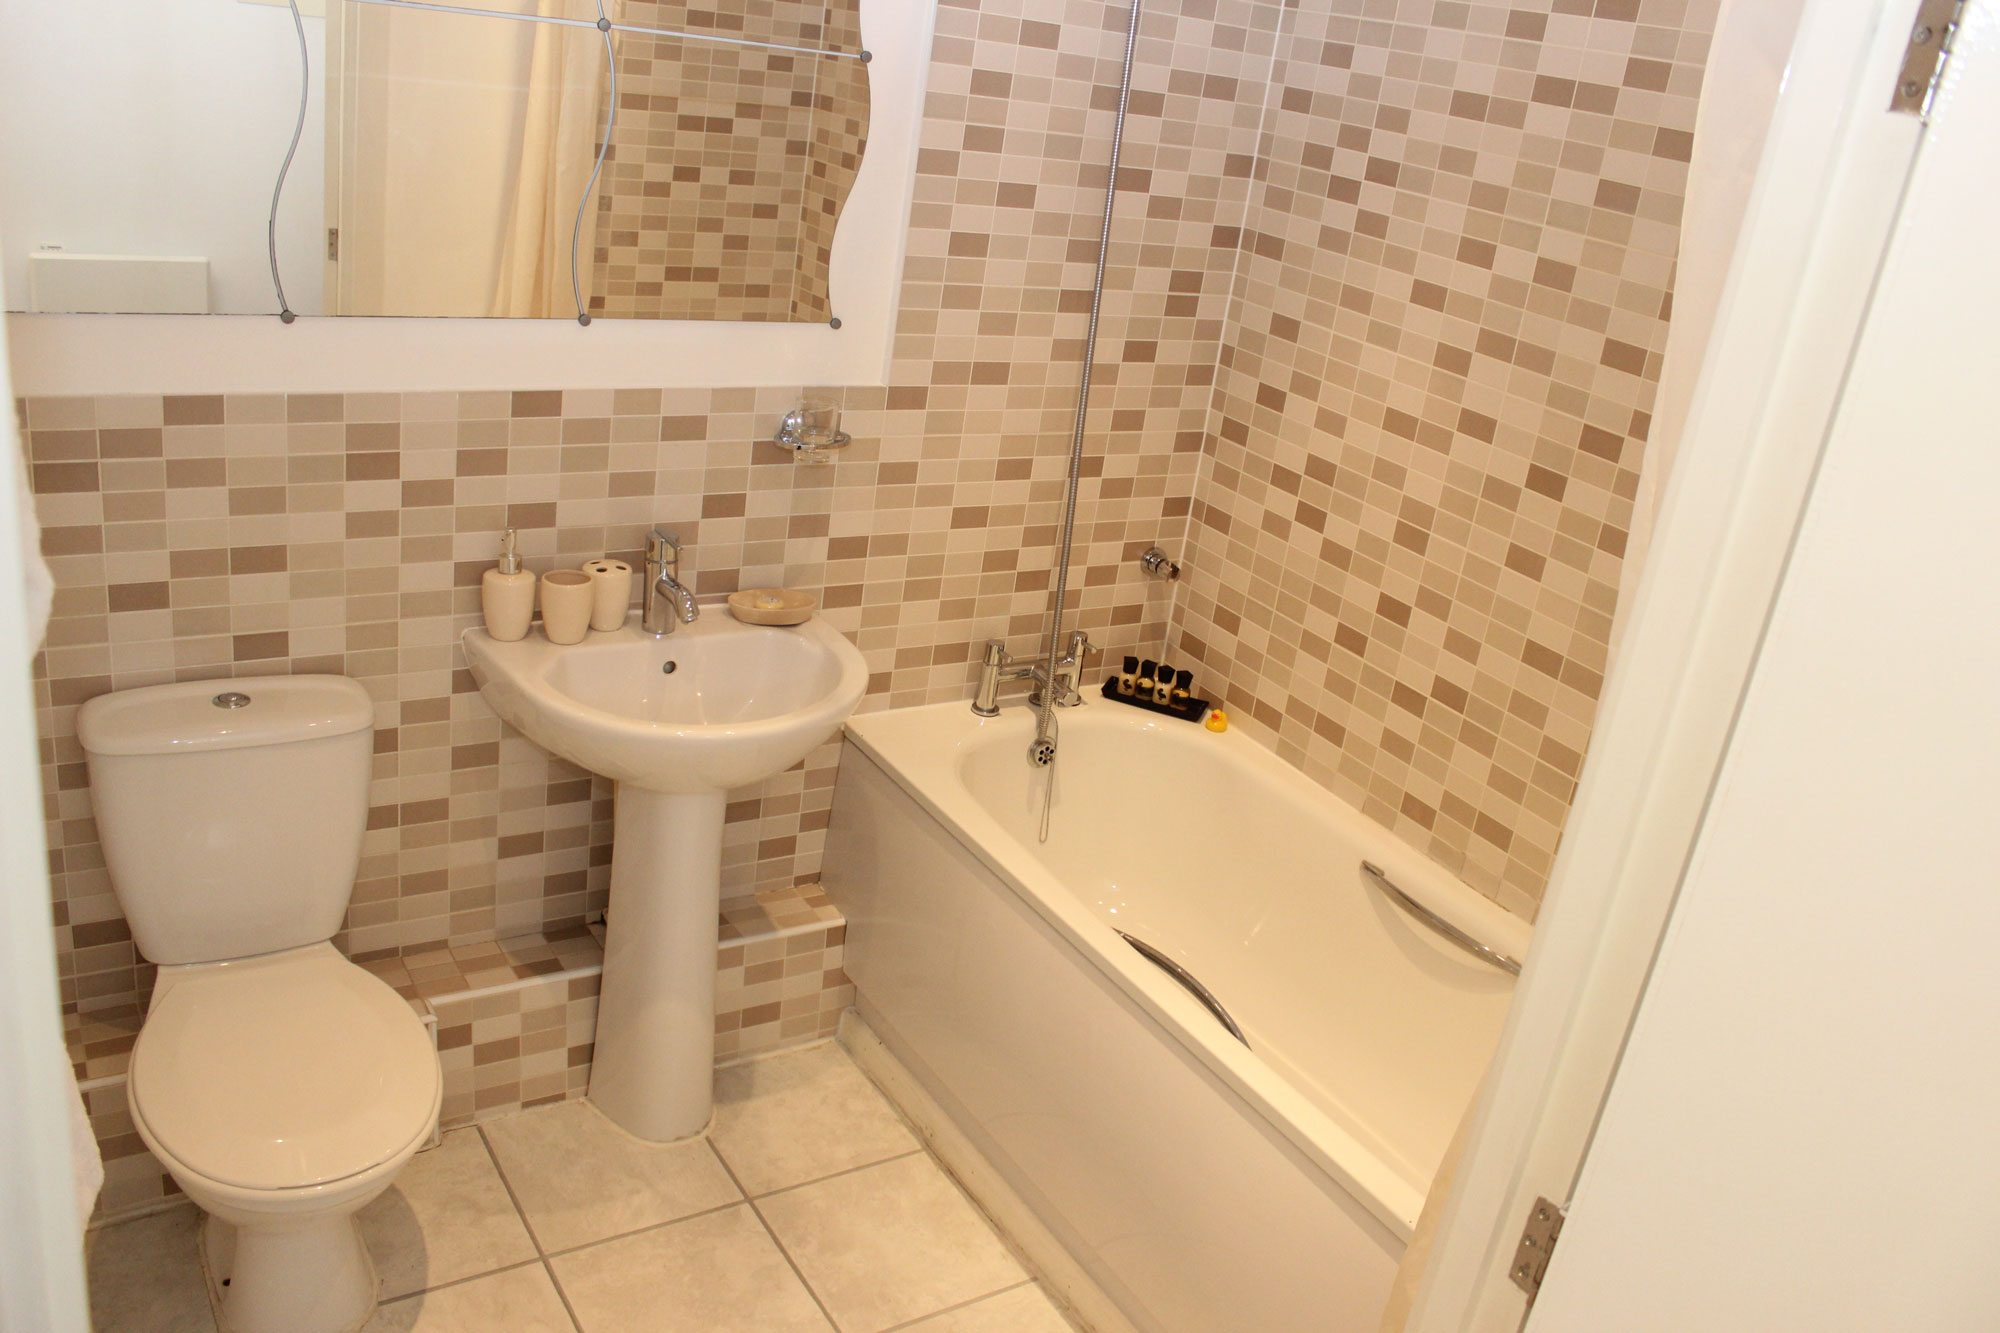 The-Academy-Corporate-Accommodation-Luton---Urban-Stay-Serviced-Apartments-UK---bathroom